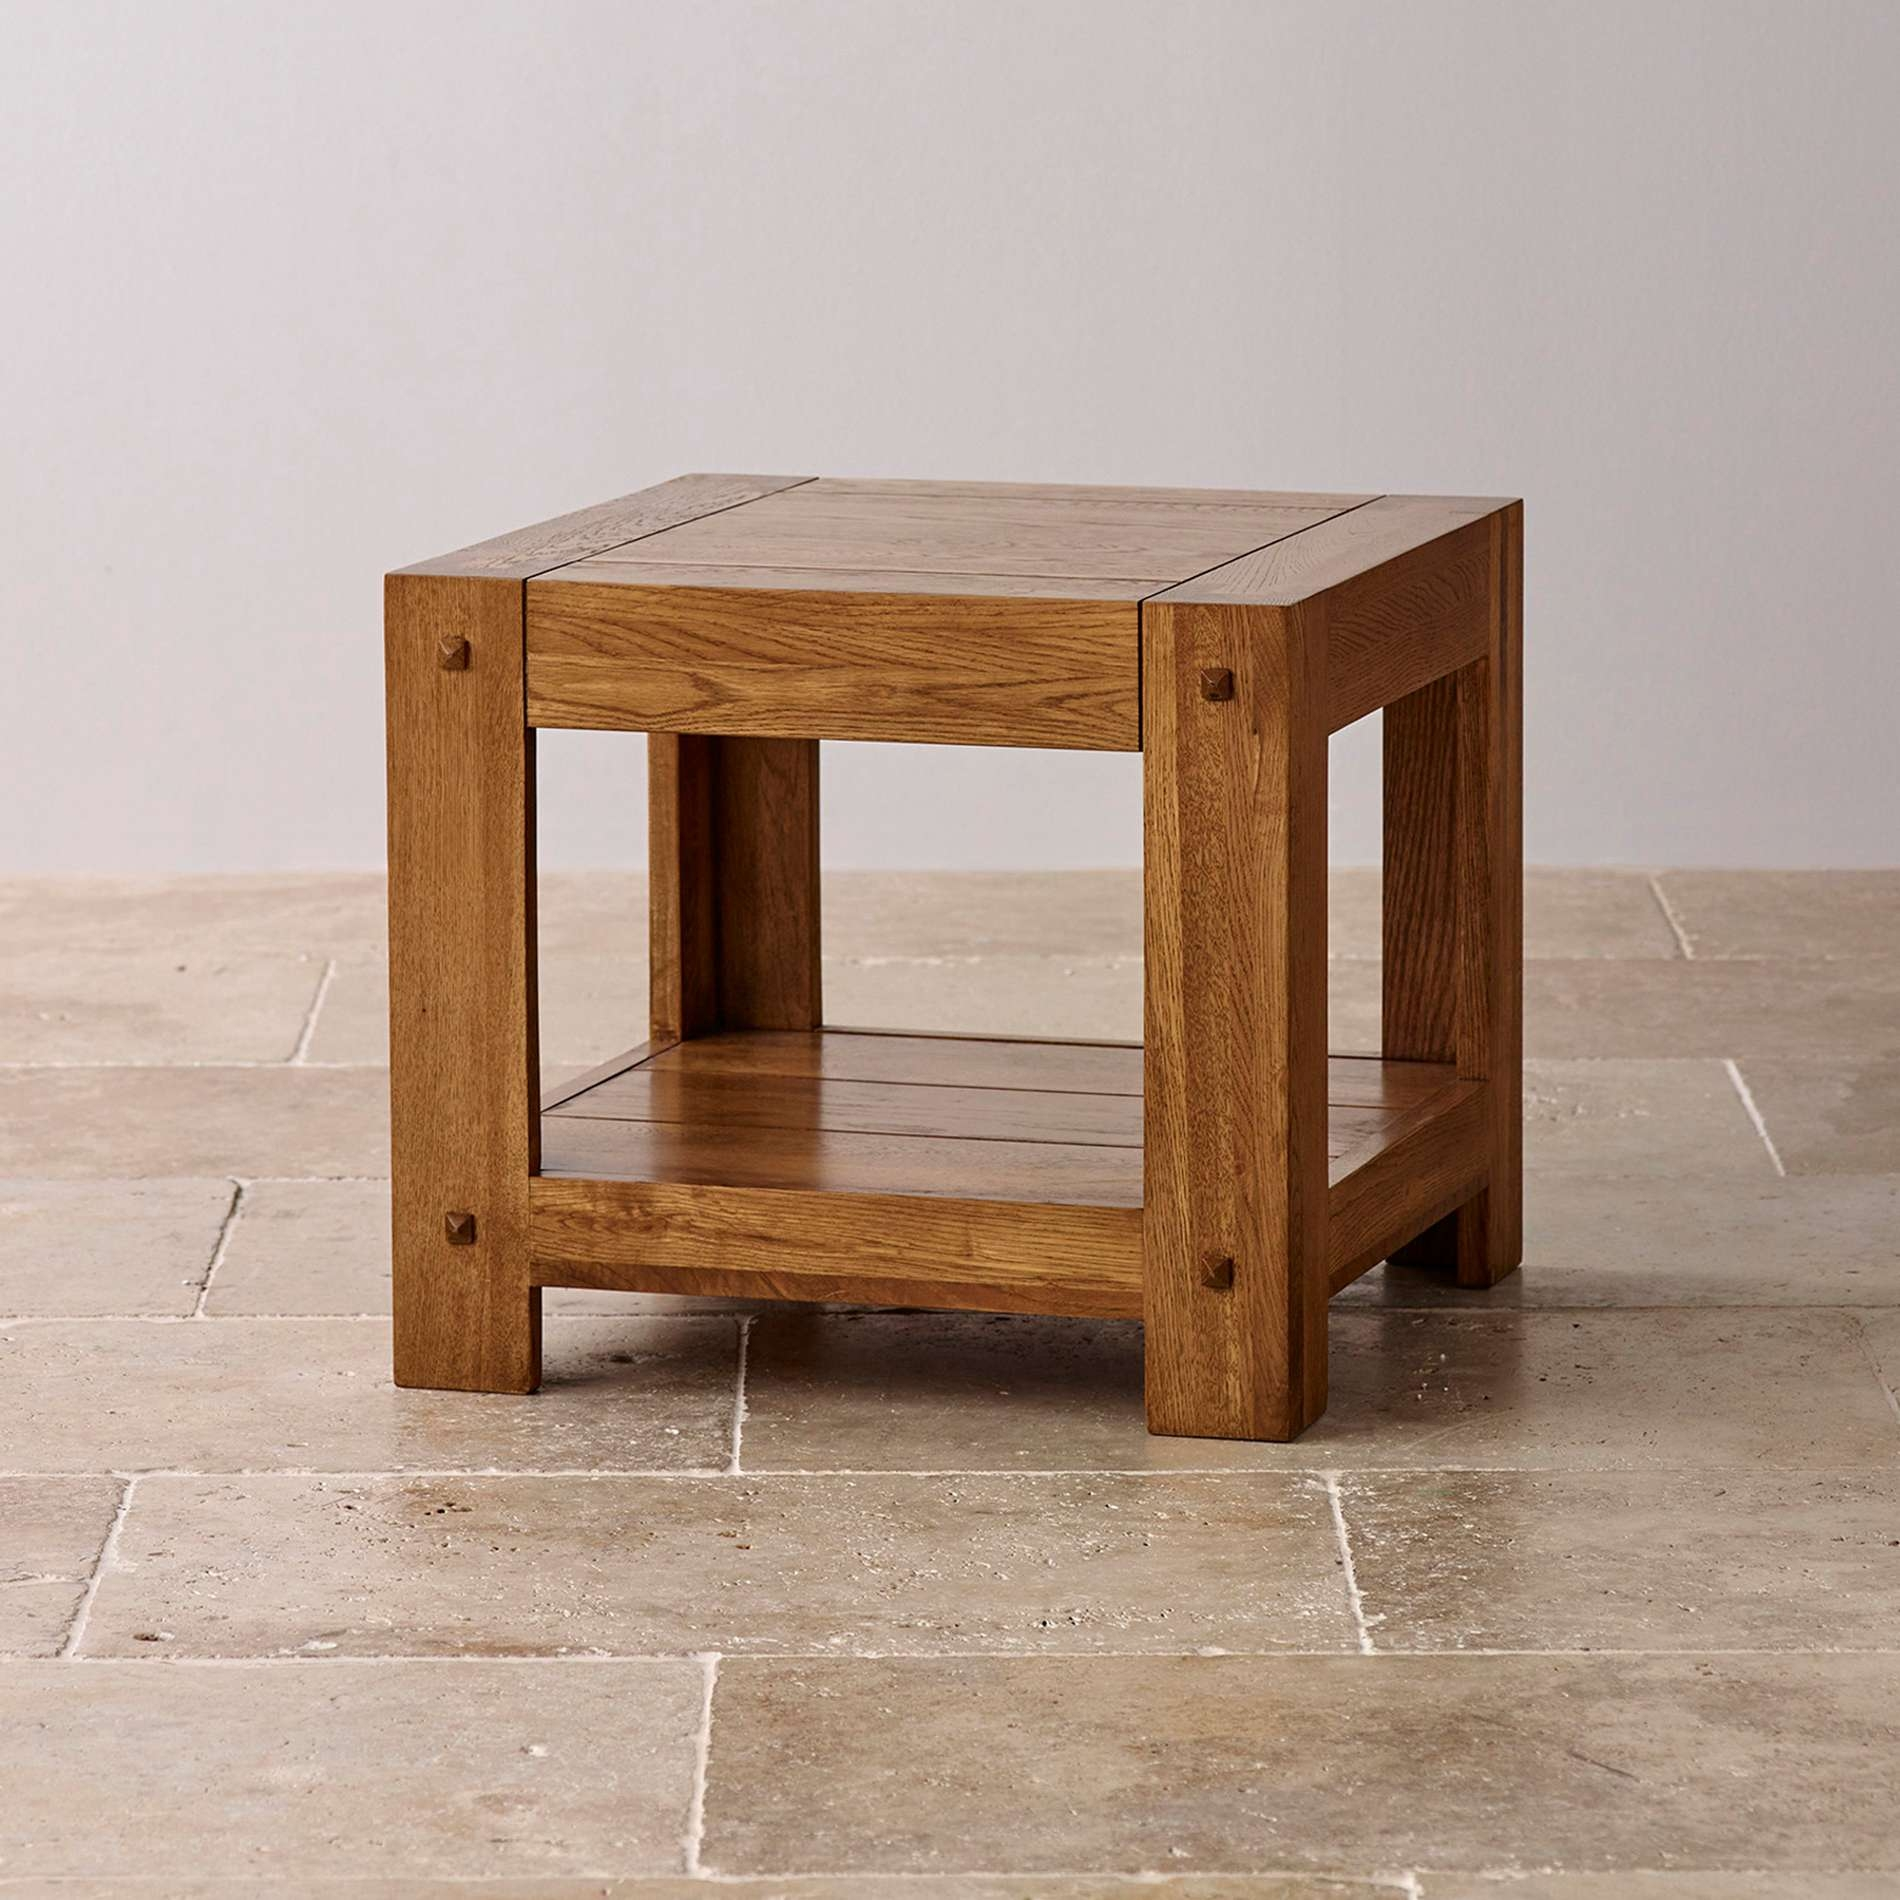 Oak Furniture Land Regarding Favorite Rustic Oak Coffee Tables (Gallery 9 of 20)